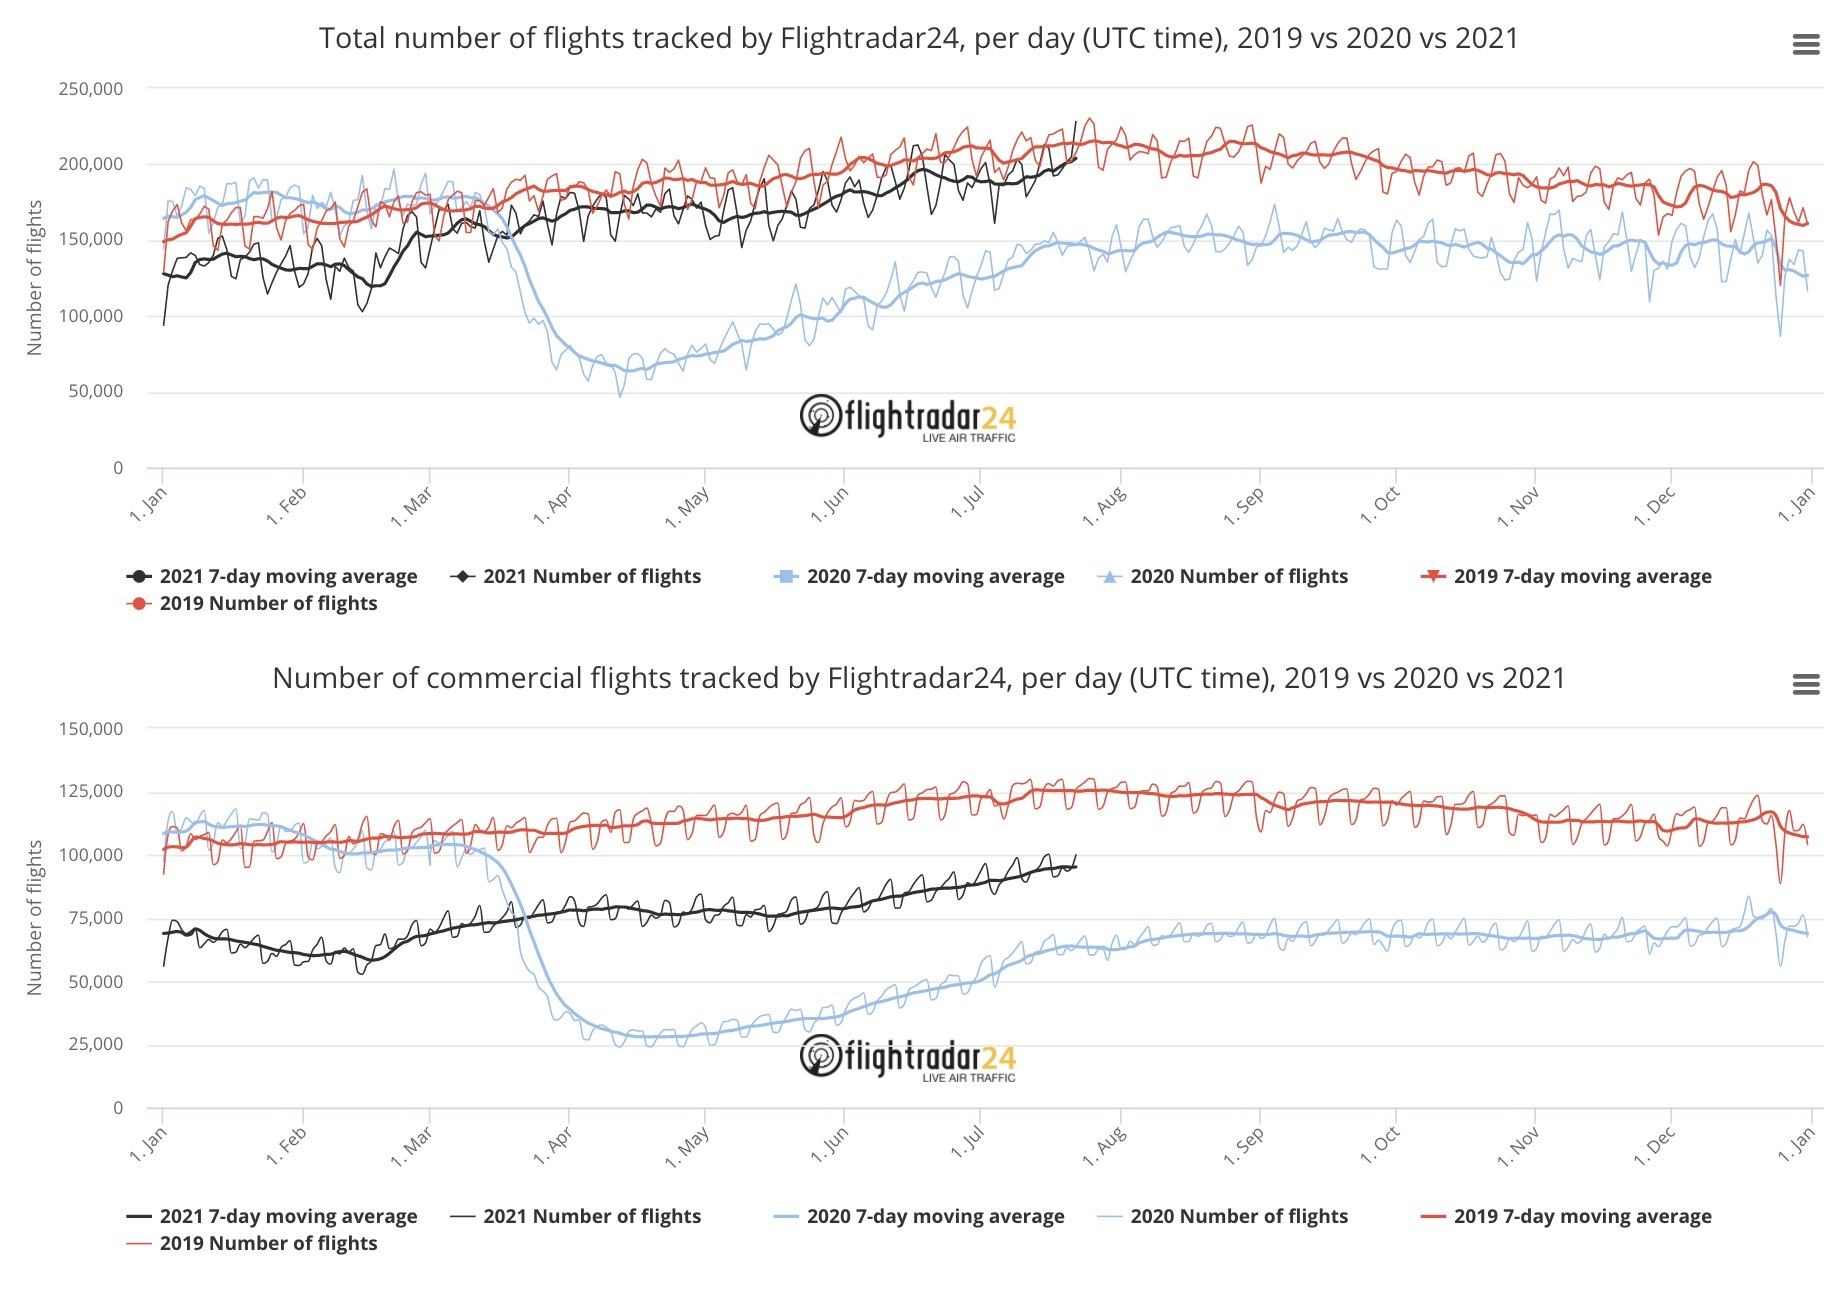 Charts showing total and commercial flights tracked by Flightradar24 from 2019-2021